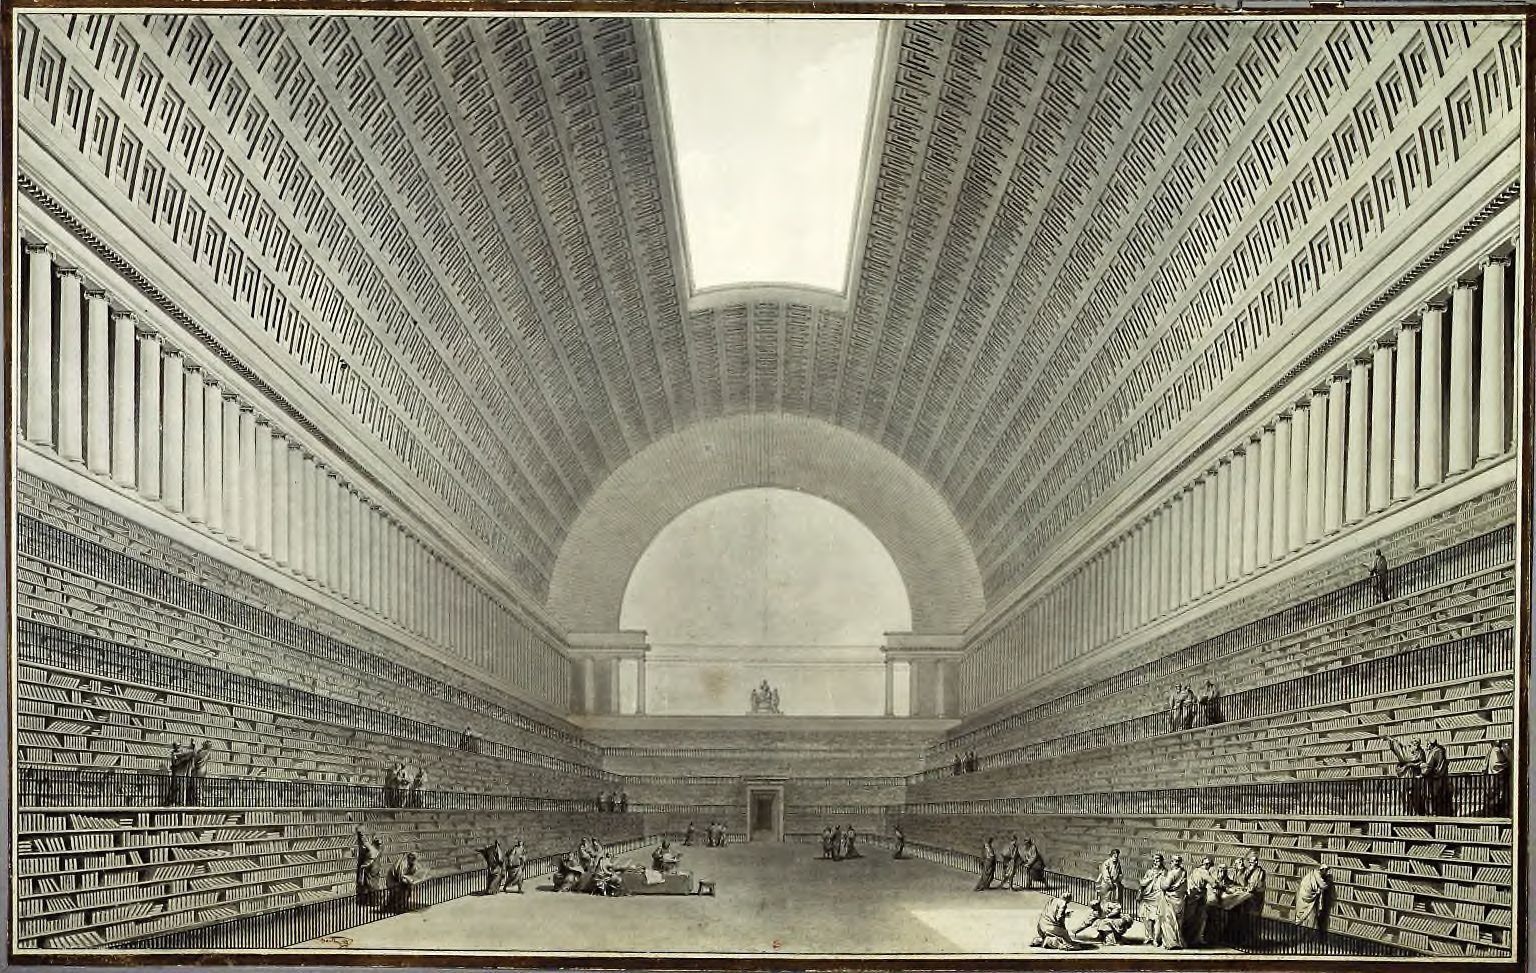 Scanned image of Boullee's proposed royal library from 1795.